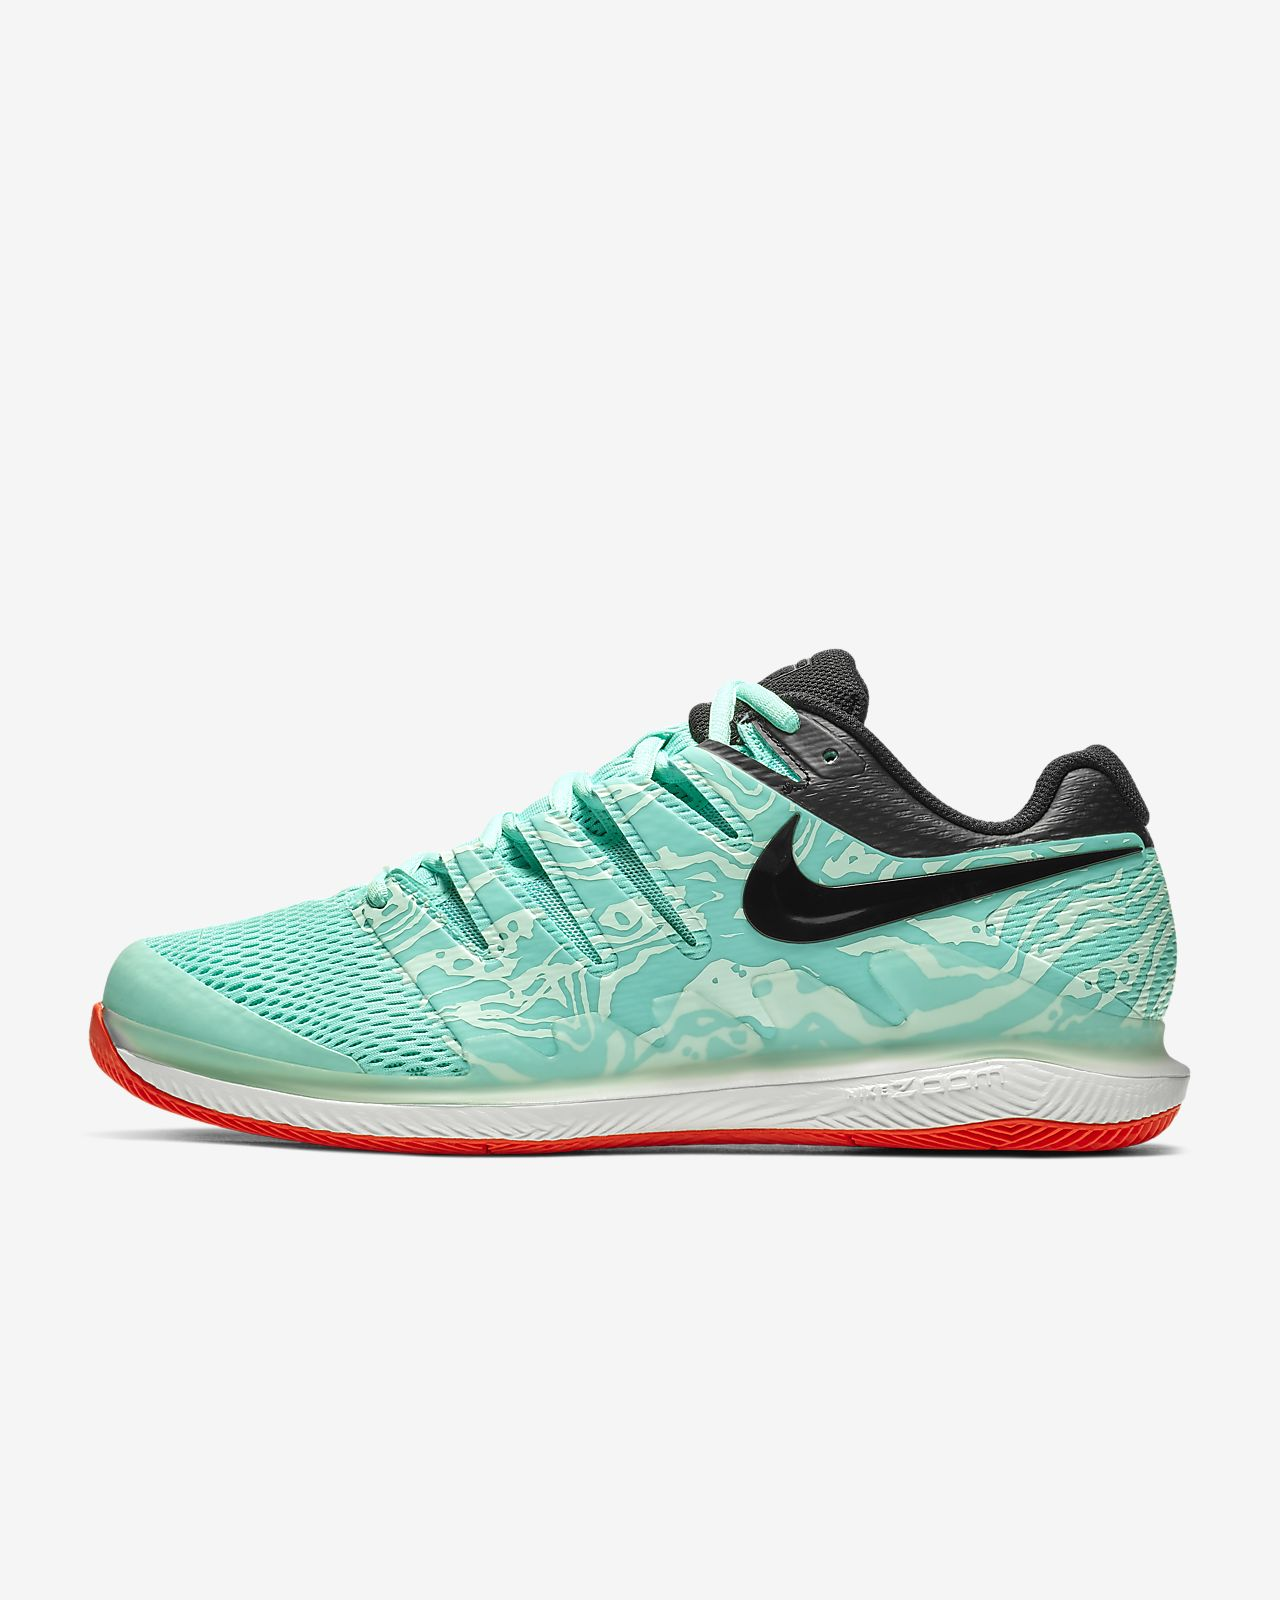 finest selection cc677 86d0d Cemento Zoom Per Scarpa X Vapor Tennis Da Nikecourt In Air Campi HUqXaf8Wq